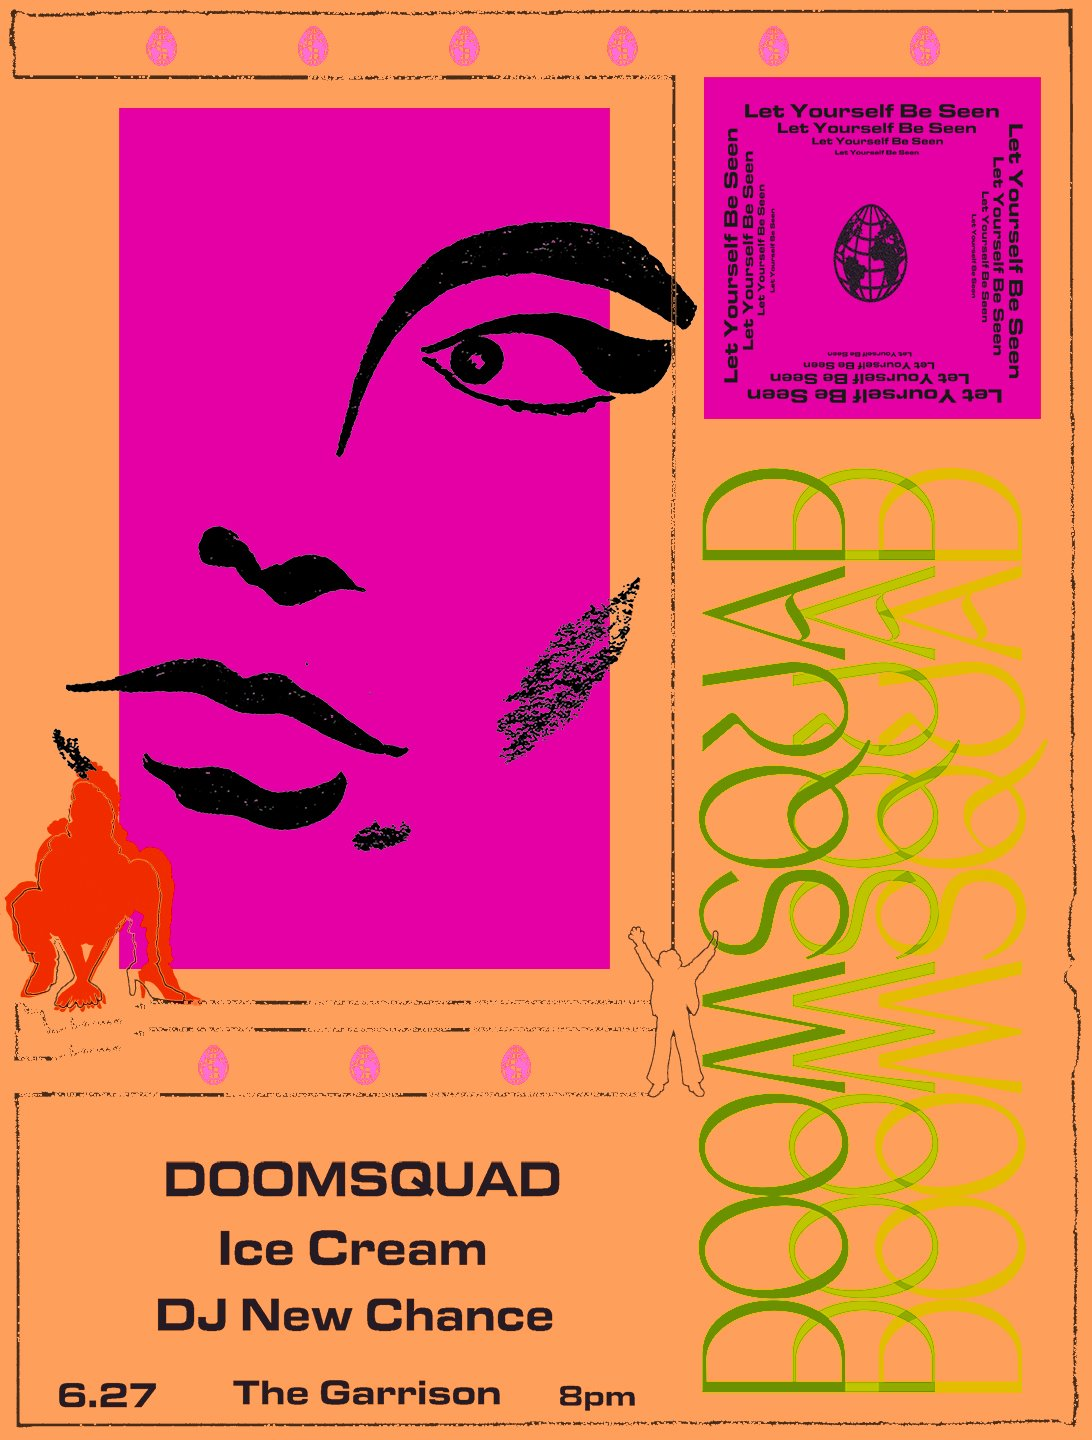 Doomsquad • Ice Cream • DJ New Chance @ The Garrison